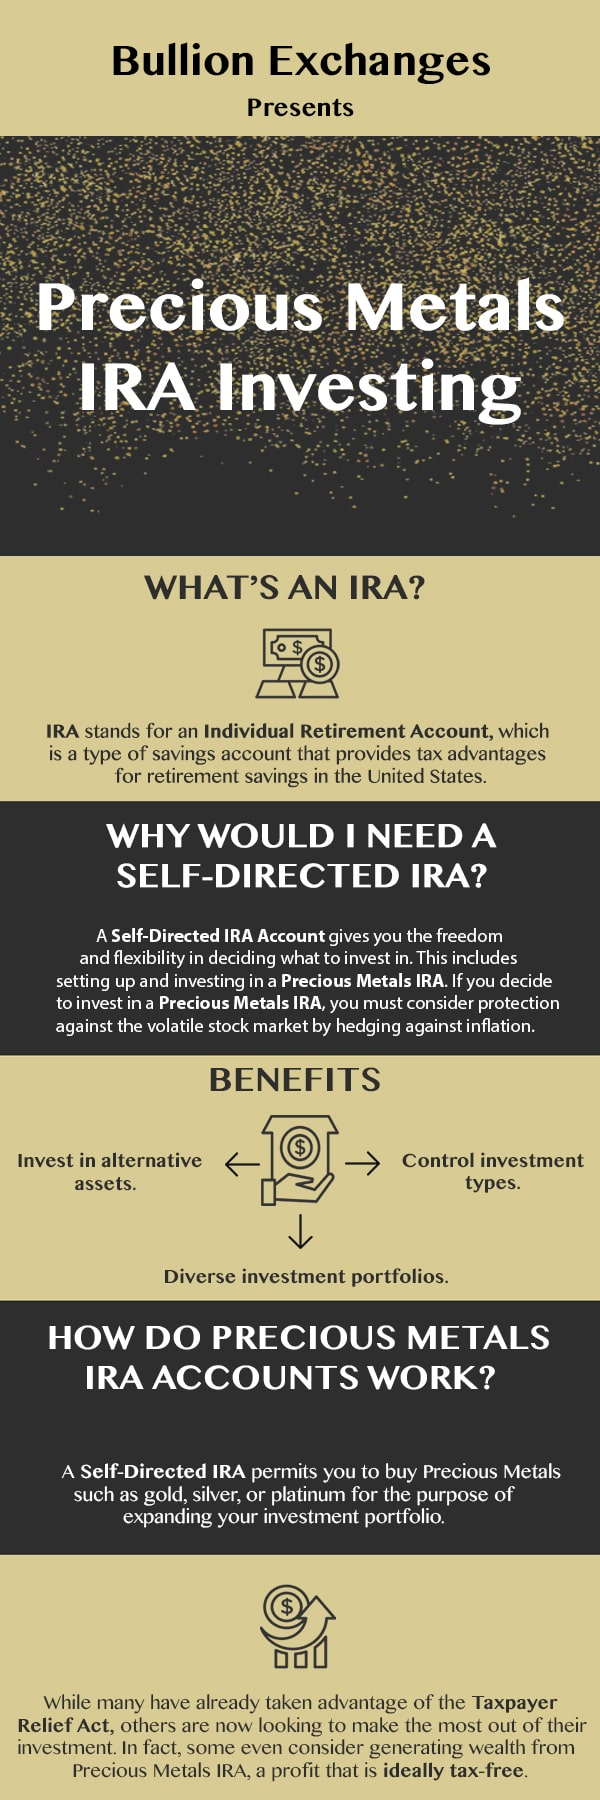 IRA Eligible Products